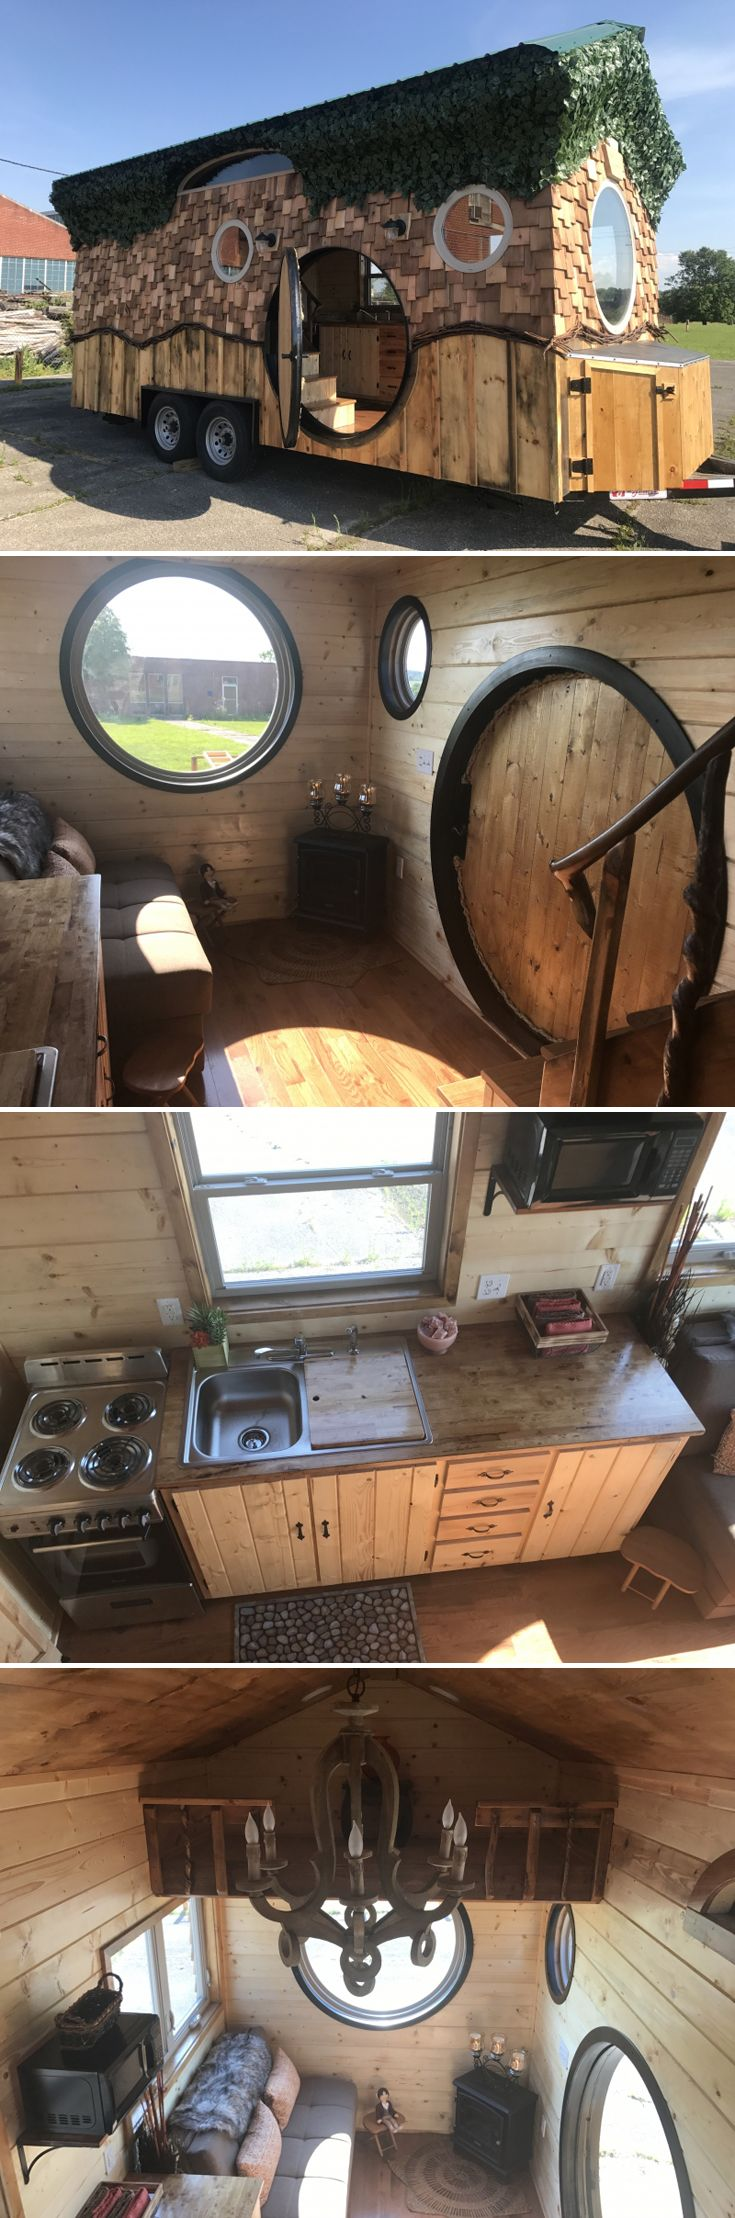 Lord of the Rings fans can now stay in a hobbit-themed tiny house at the WeeCasa Tiny Home Resort in Lyons, CO -- complete with circular door and windows!